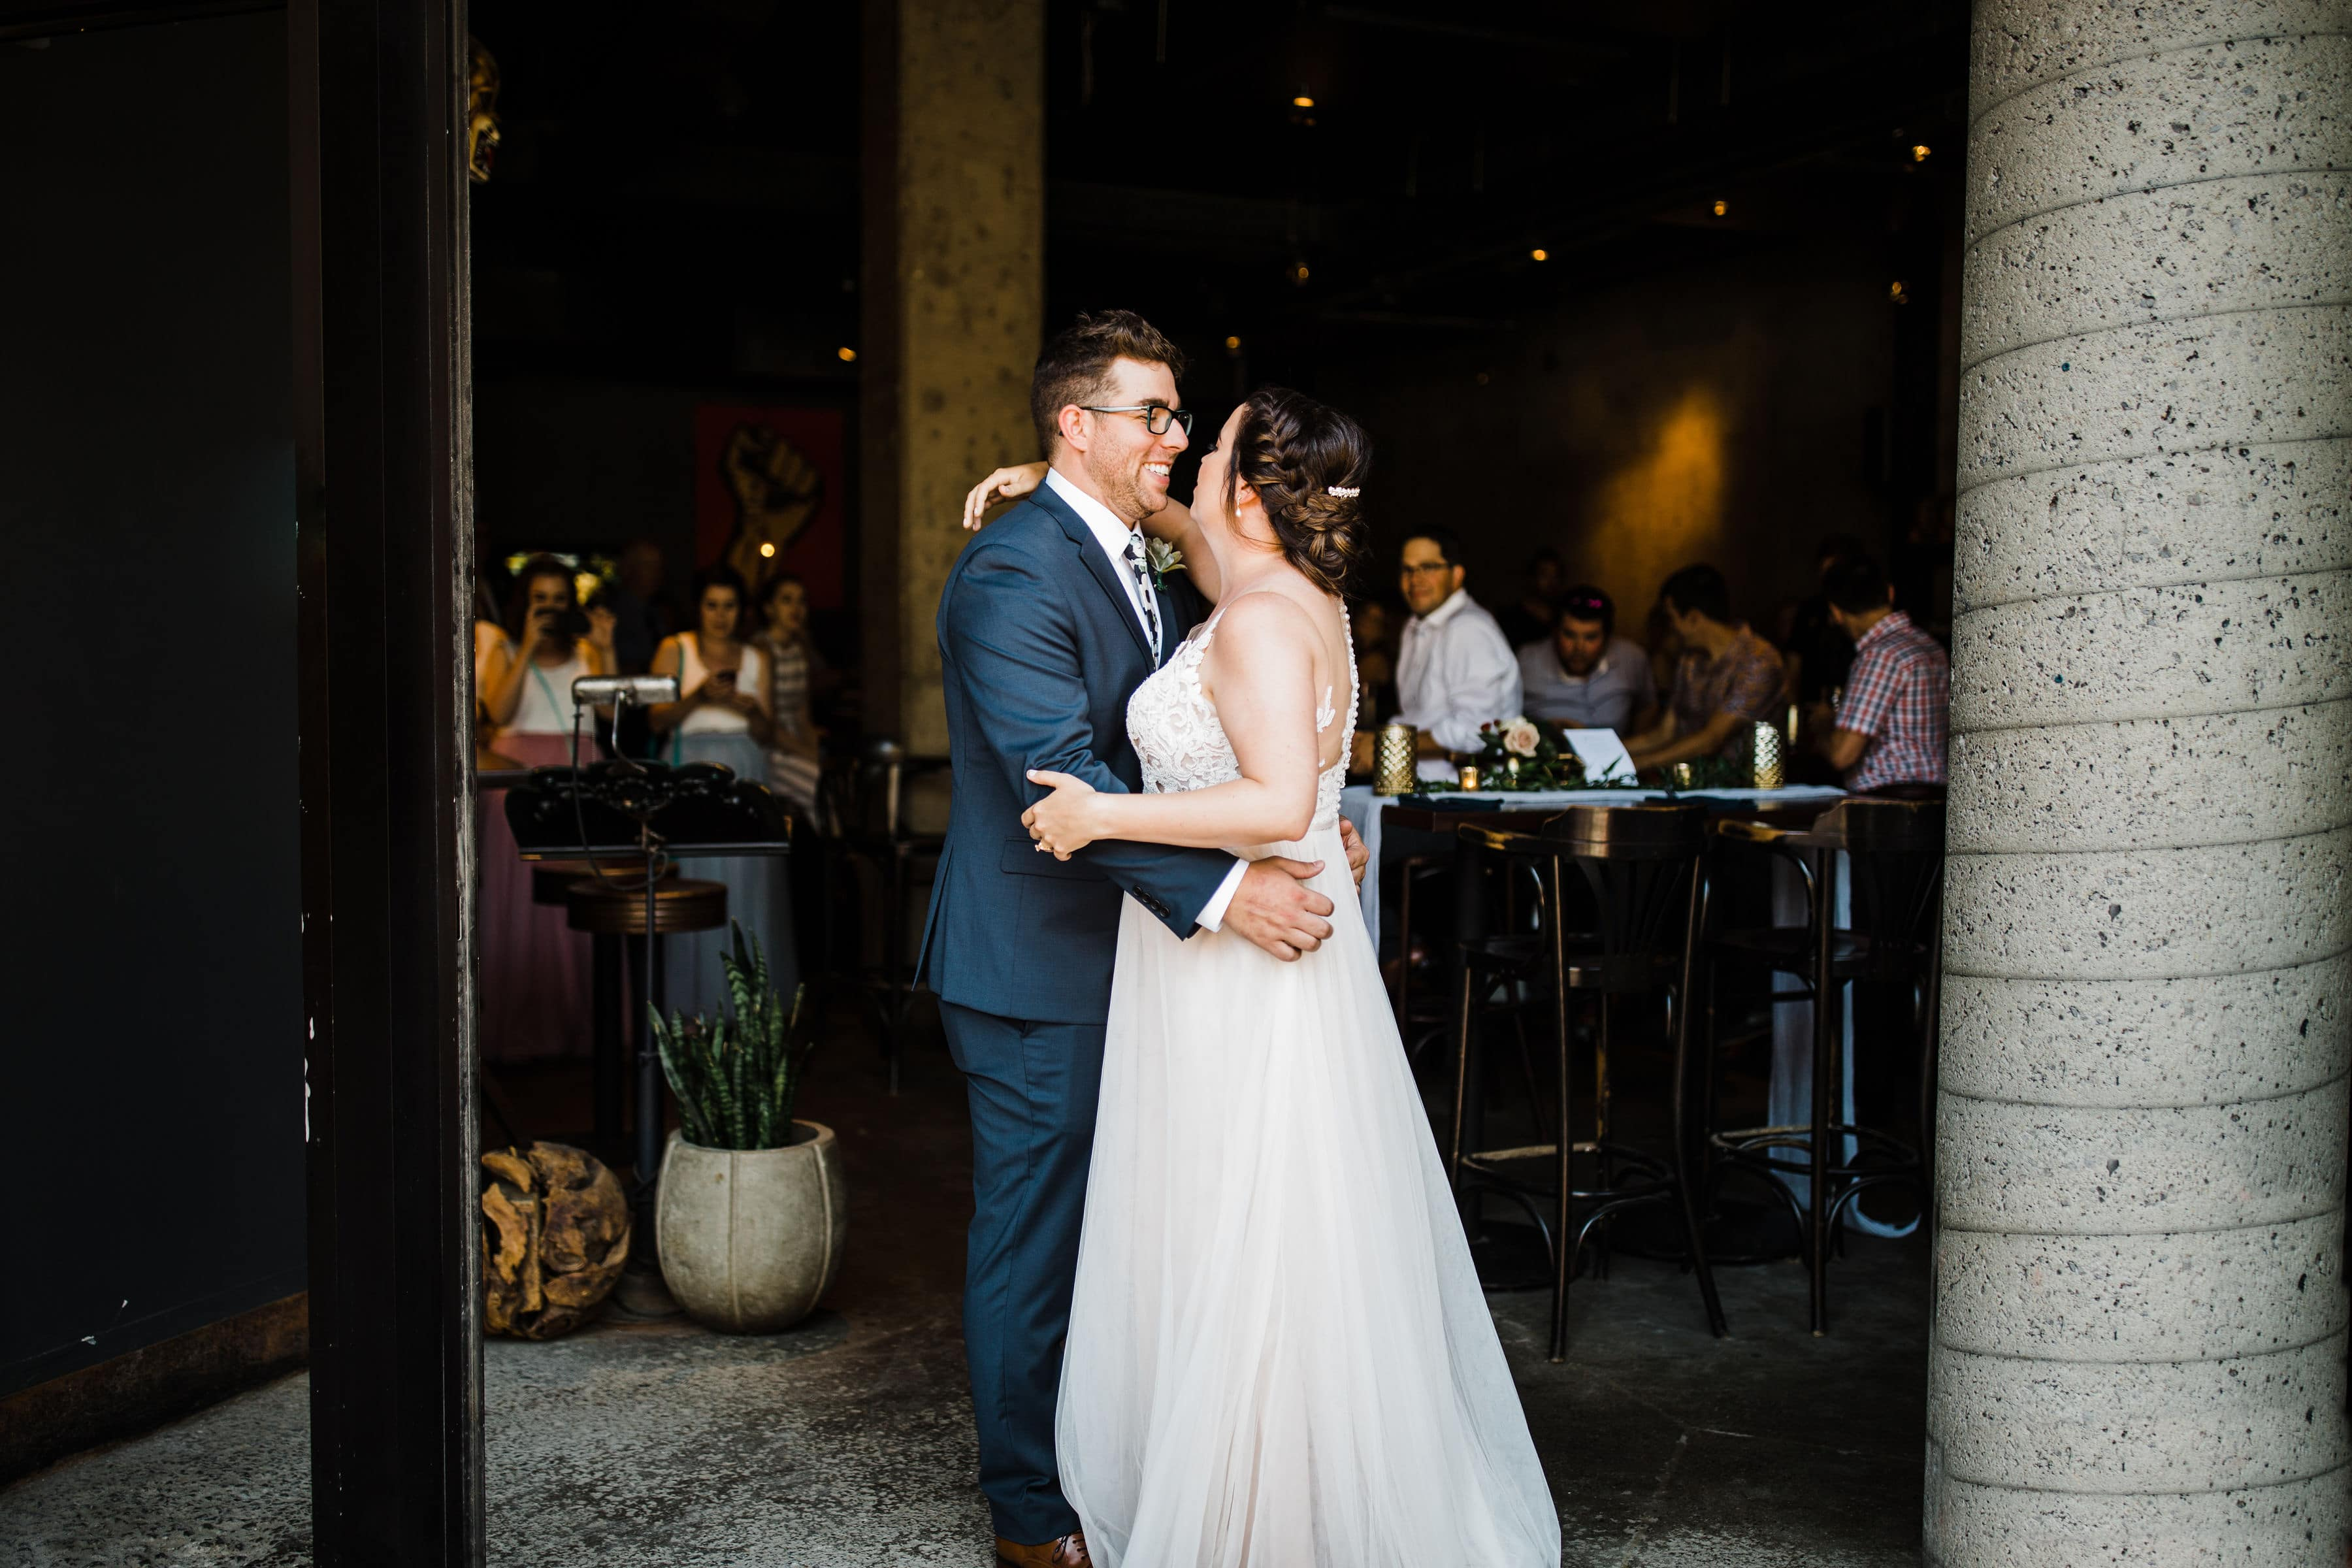 bride and groom's first dance - downtown ottawa wedding el camino